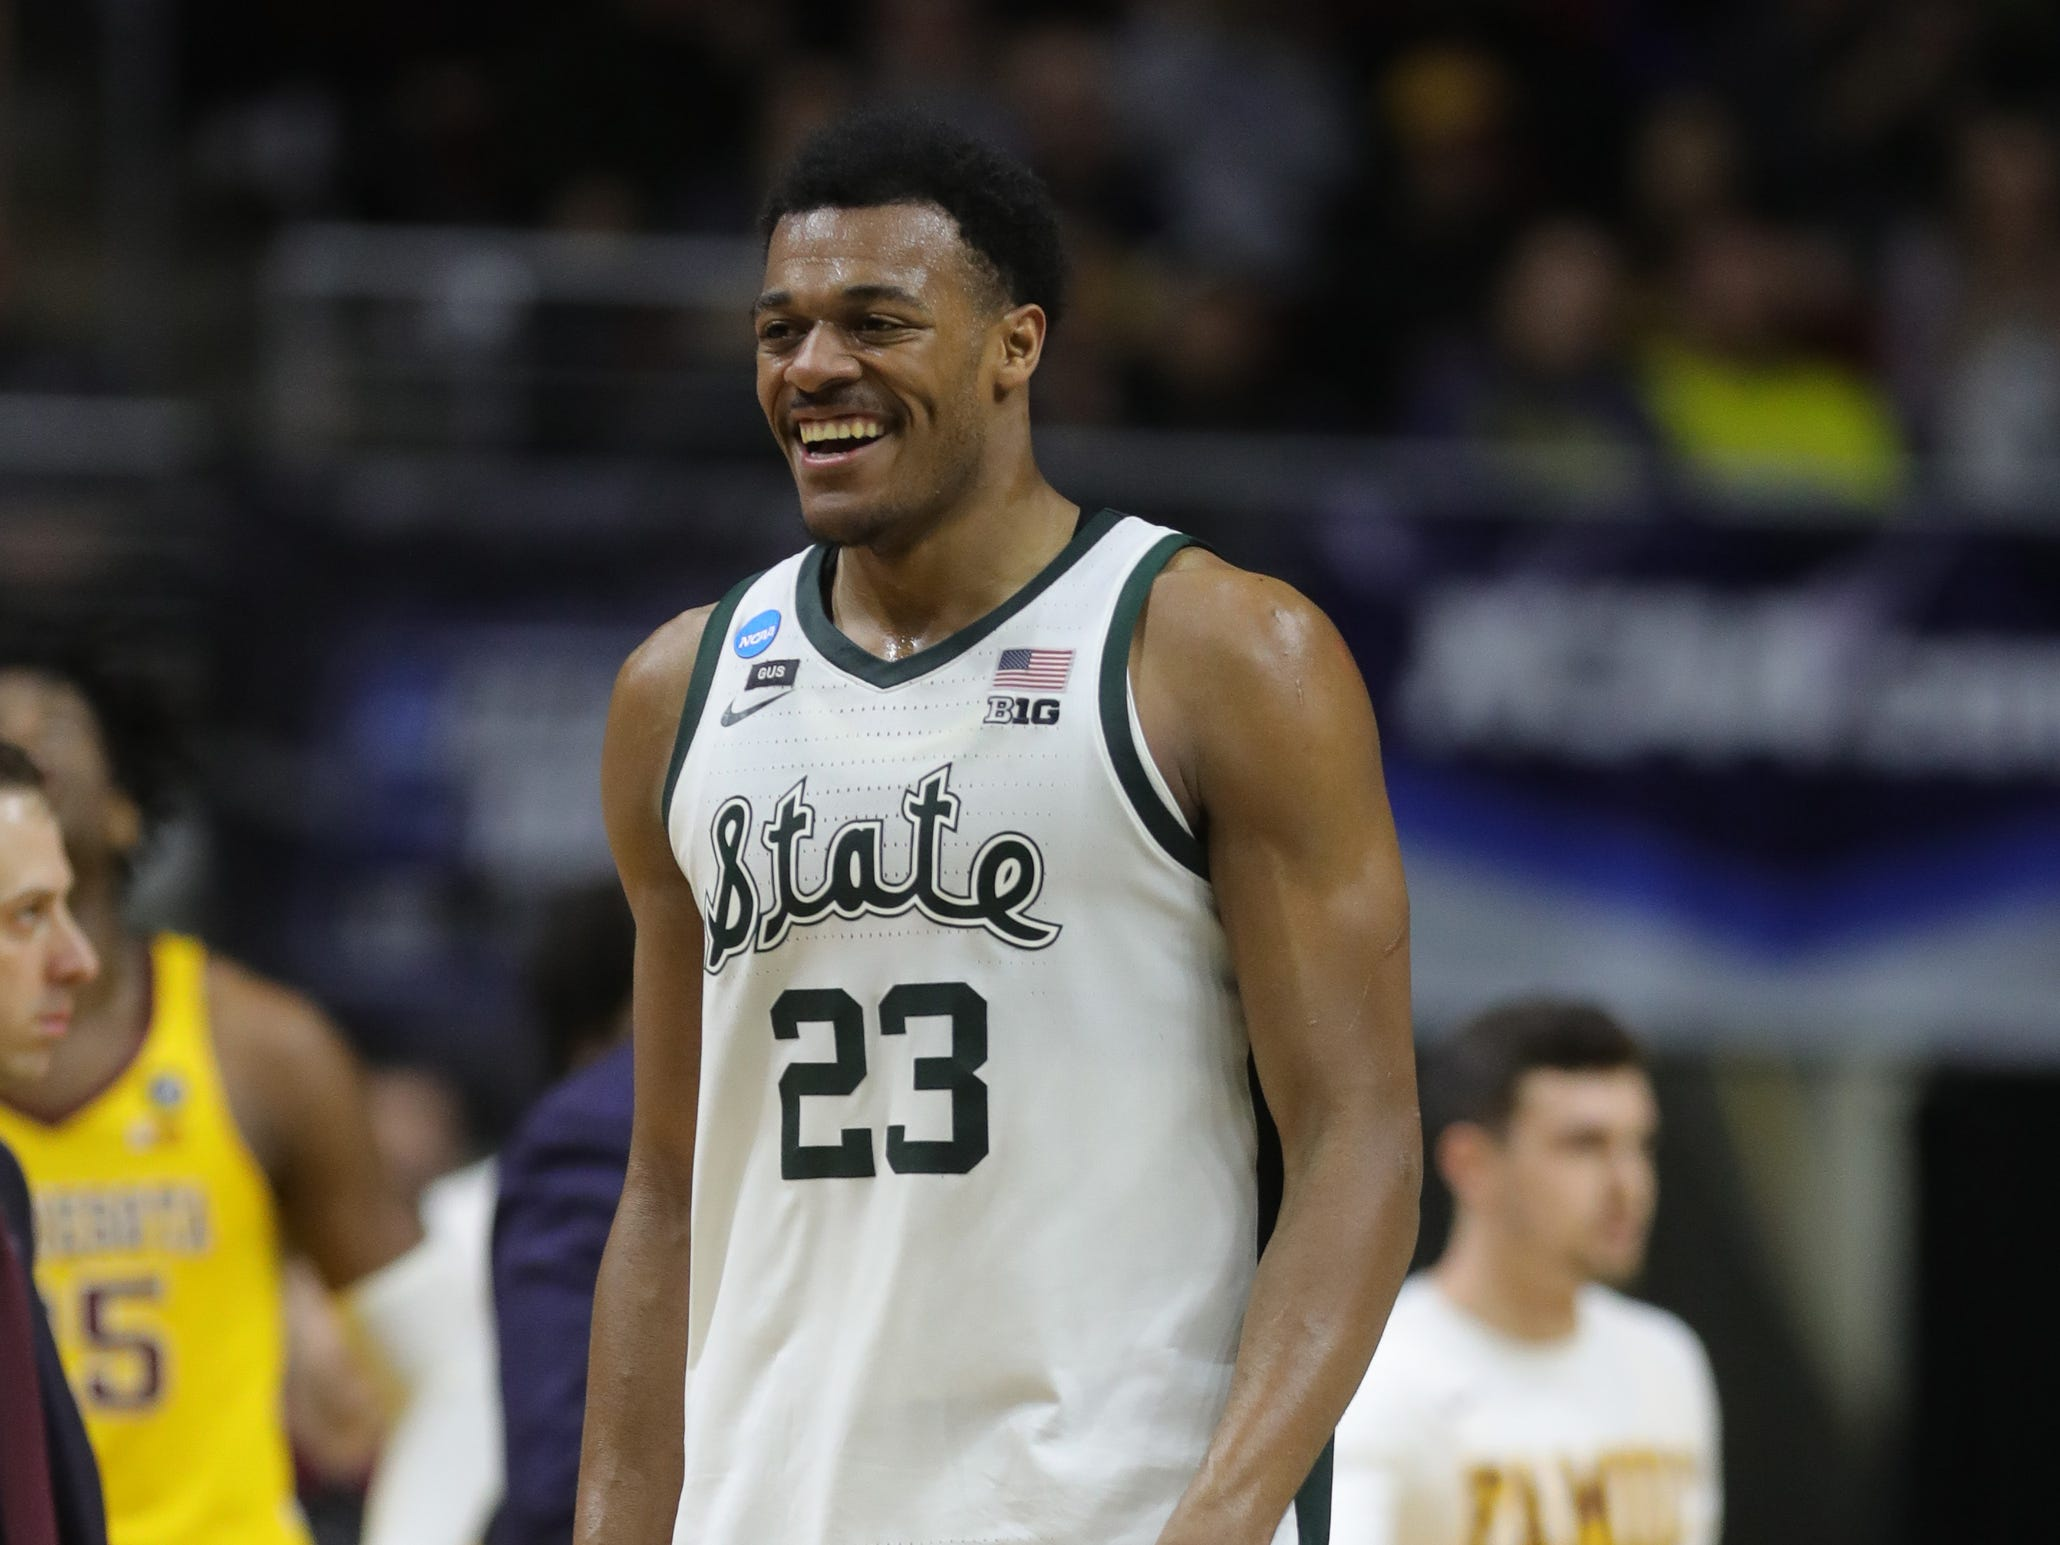 Michigan State's Xavier Tillman smiles as he walks to the bench during the second half against Minnesota in the NCAA tournament Saturday, March 23, 2019 at Wells Fargo Arena in Des Moines, Iowa.